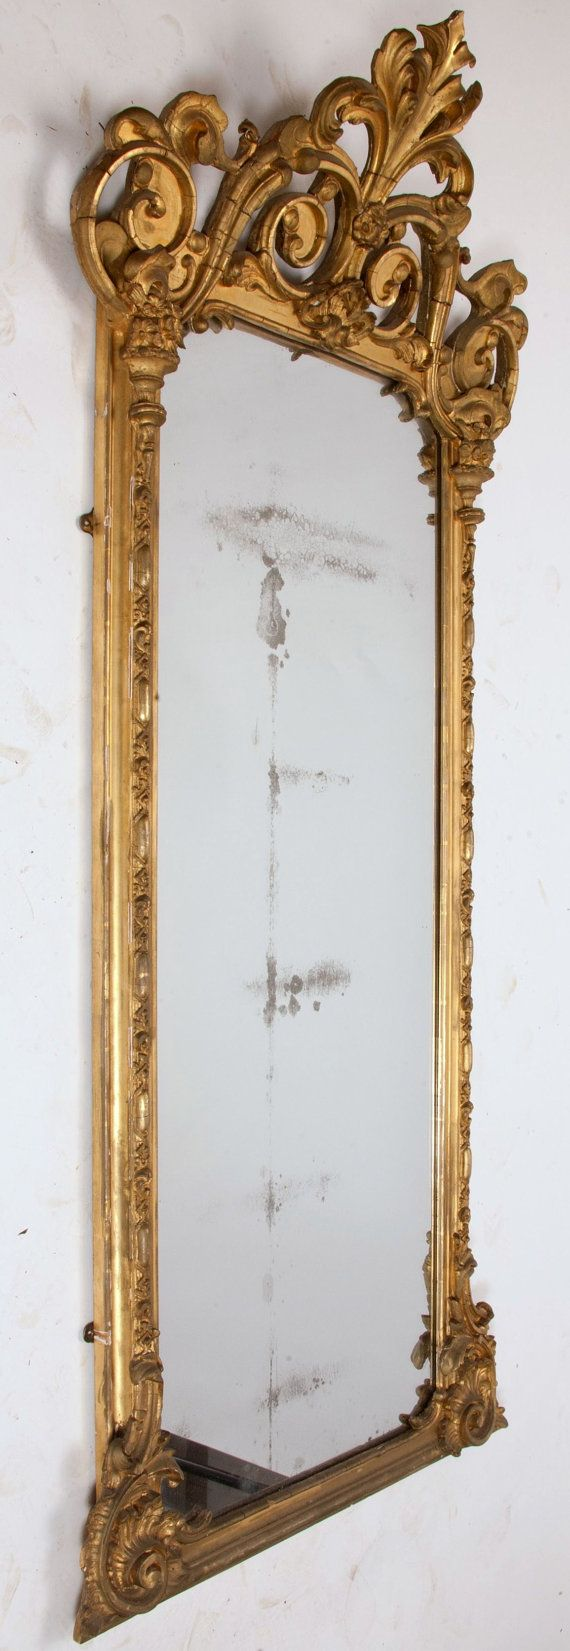 i wish !!!!!!! Circa 1870's Victorian Pier Mirror by trovedecor on Etsy, $3800.00